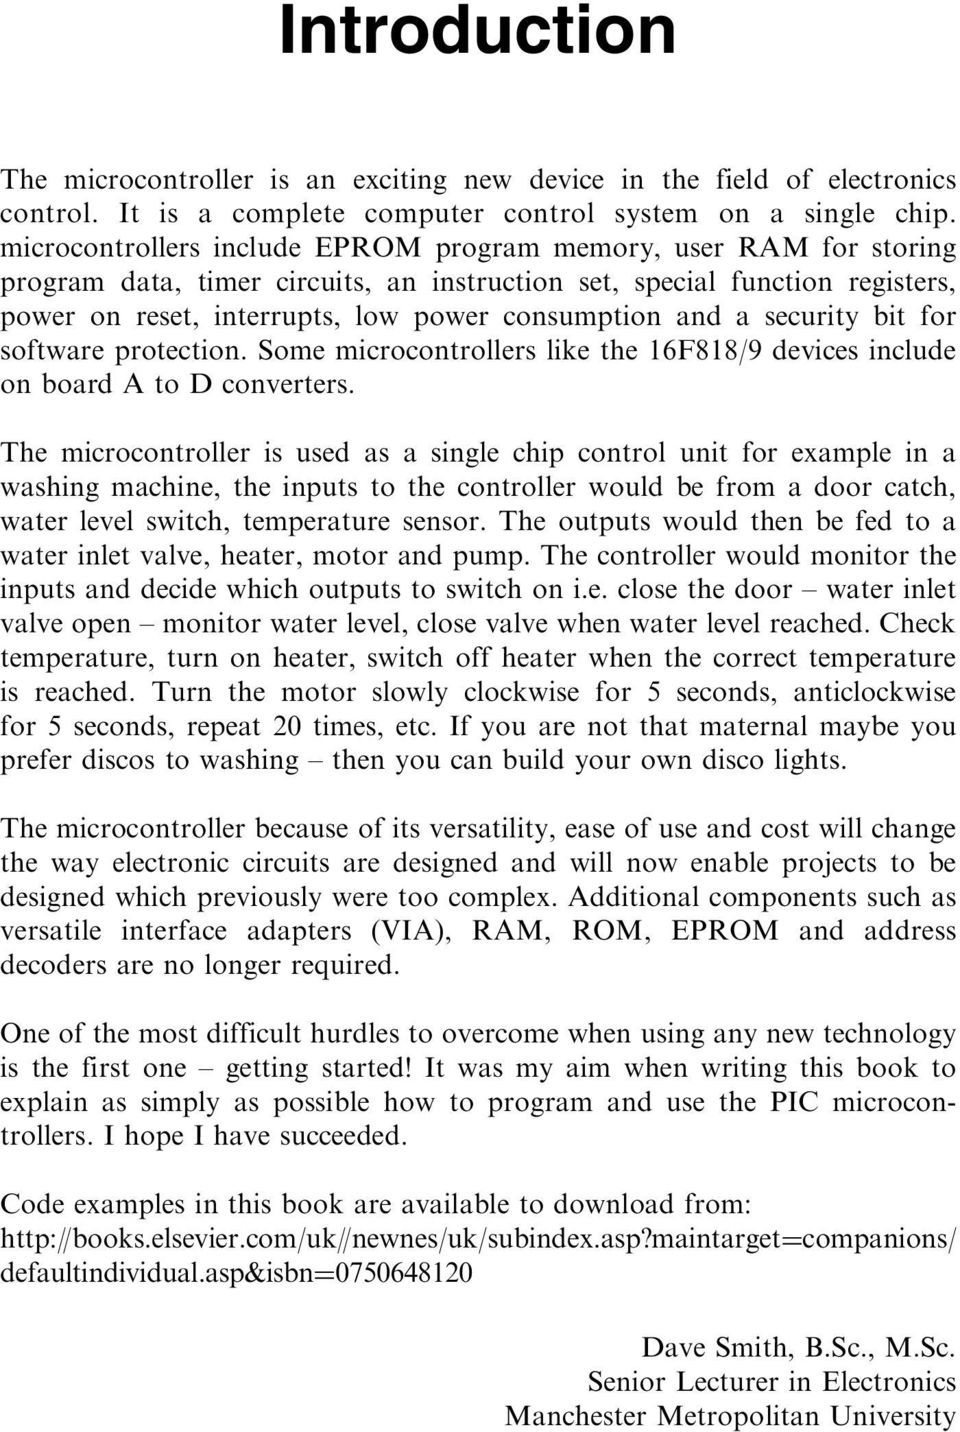 Pic In Practice A Project Based Approach D W Smith Pdf Velleman Electronic Watchdog Kit Security Bit For Software Protection Some Microcontrollers Like The 16f818 9 Devices Include